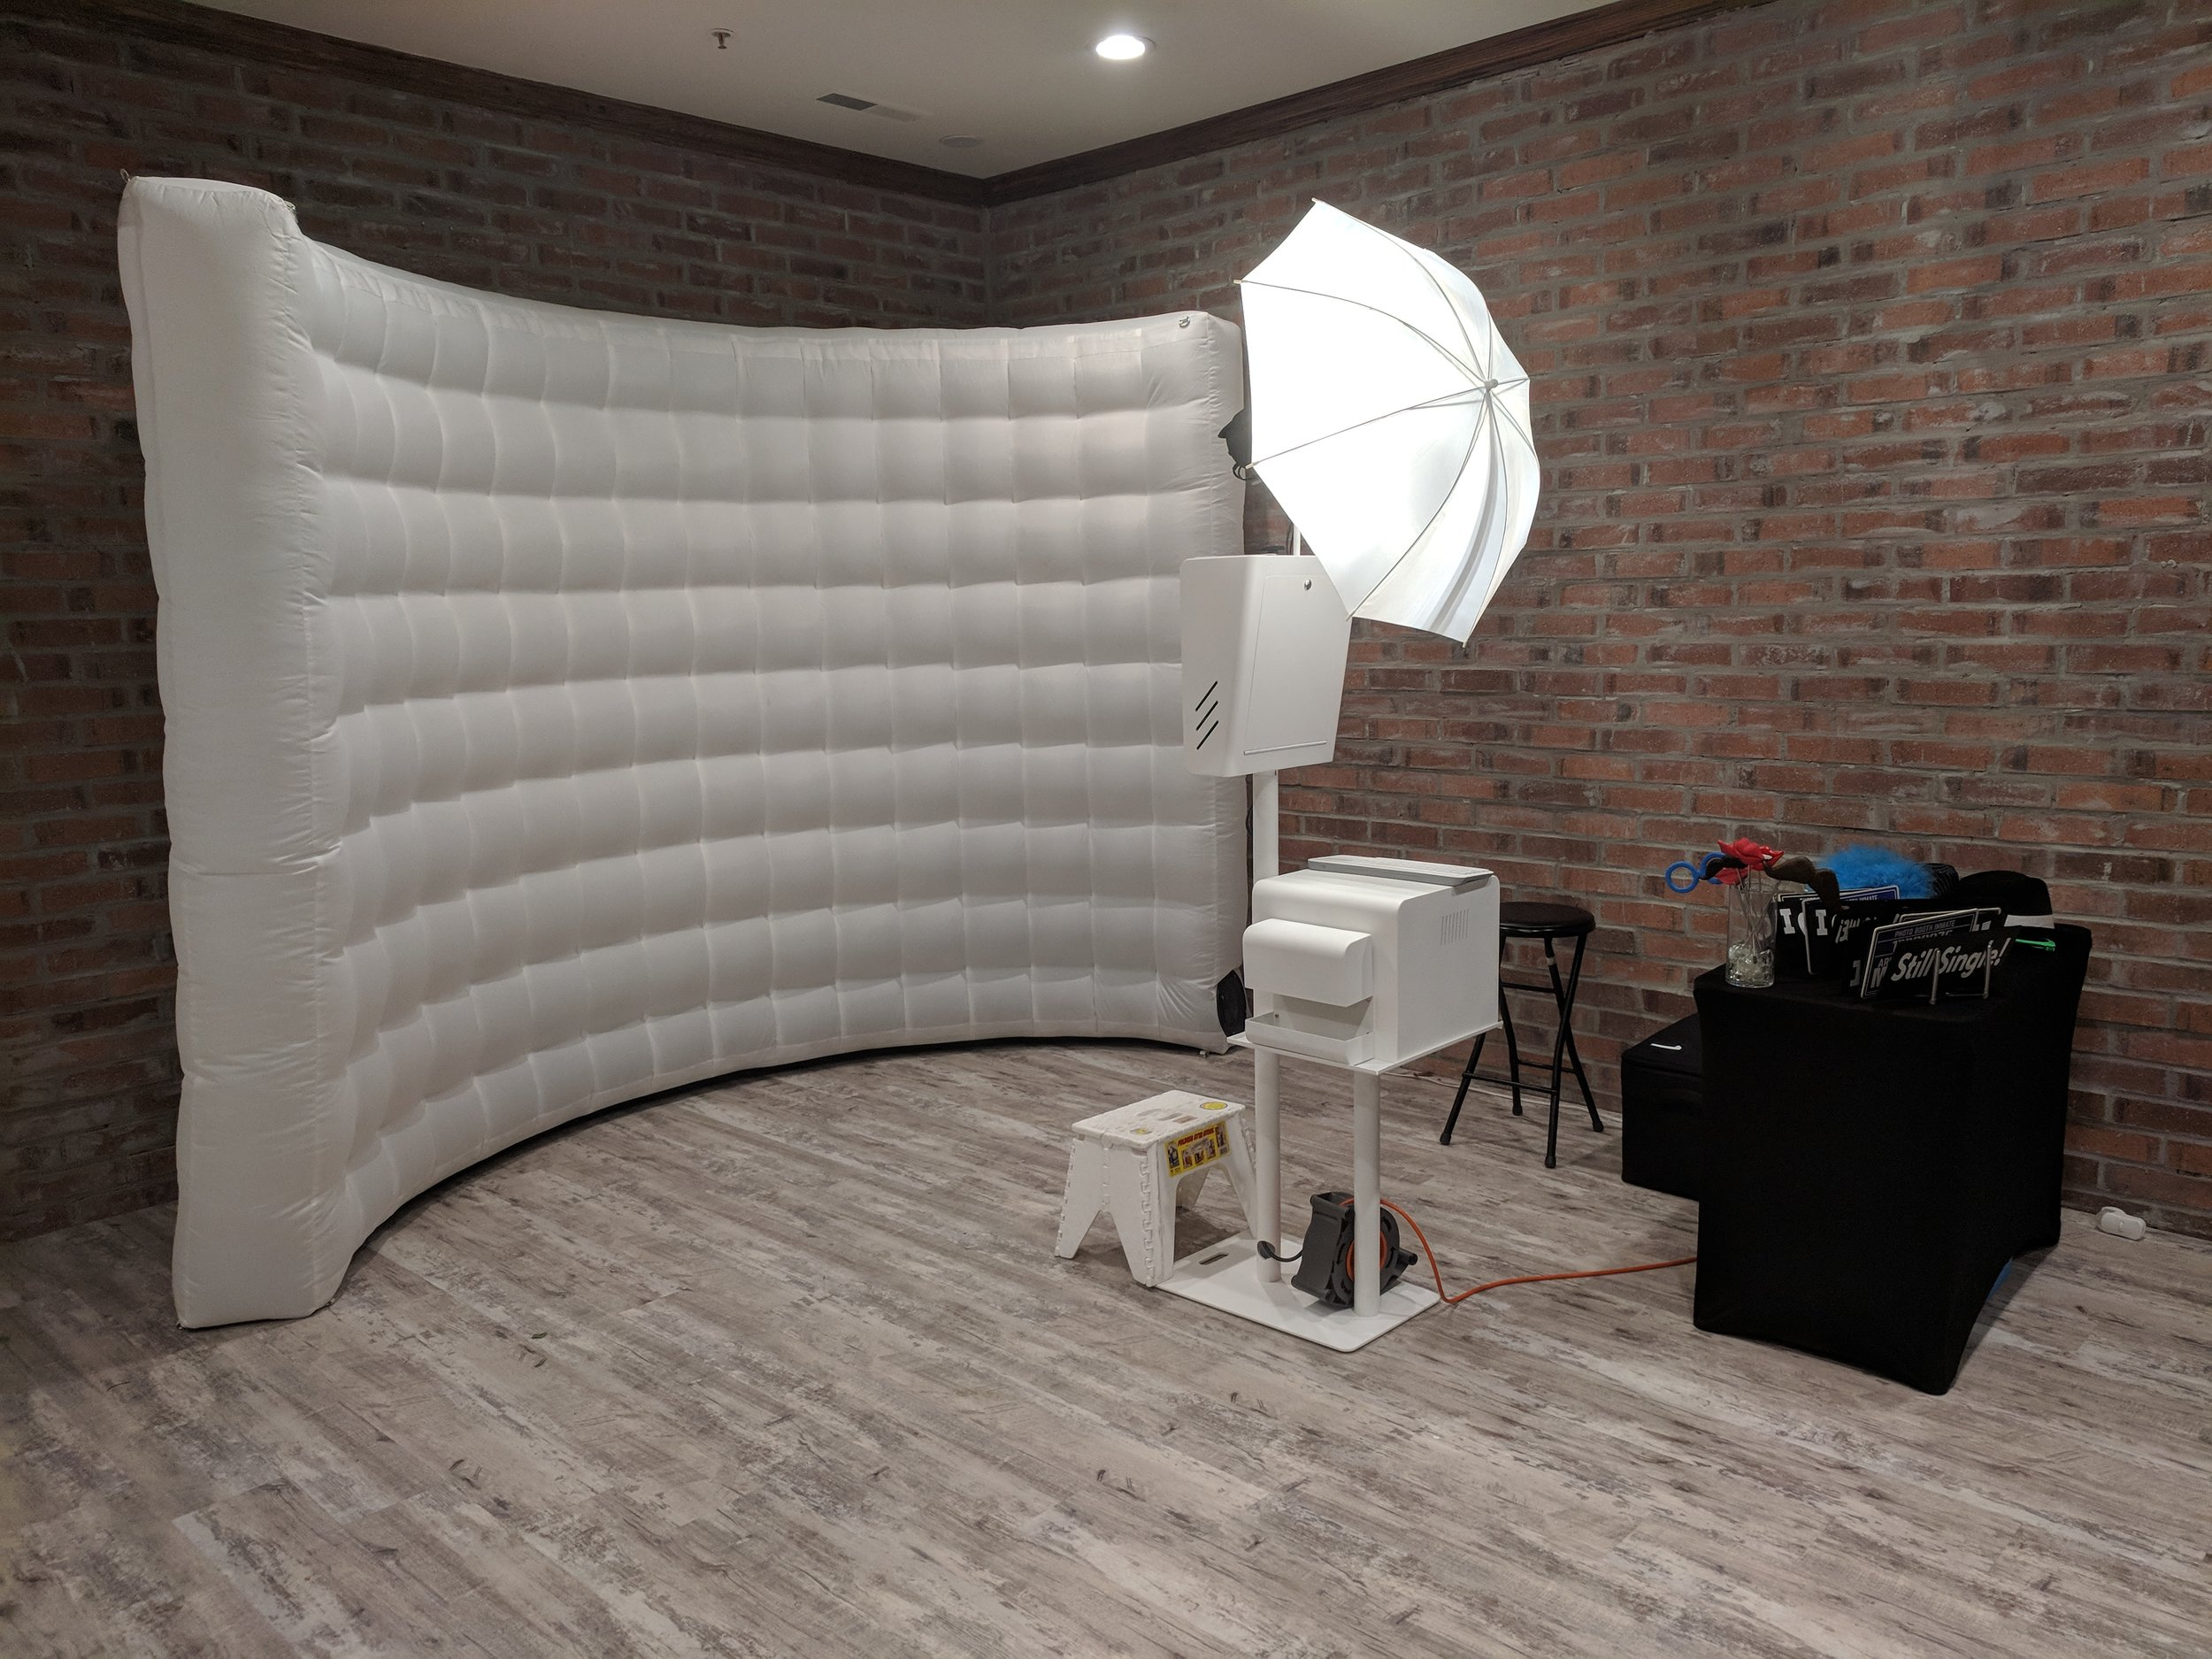 - OPEN #2WHITE INFLATABLE WALL